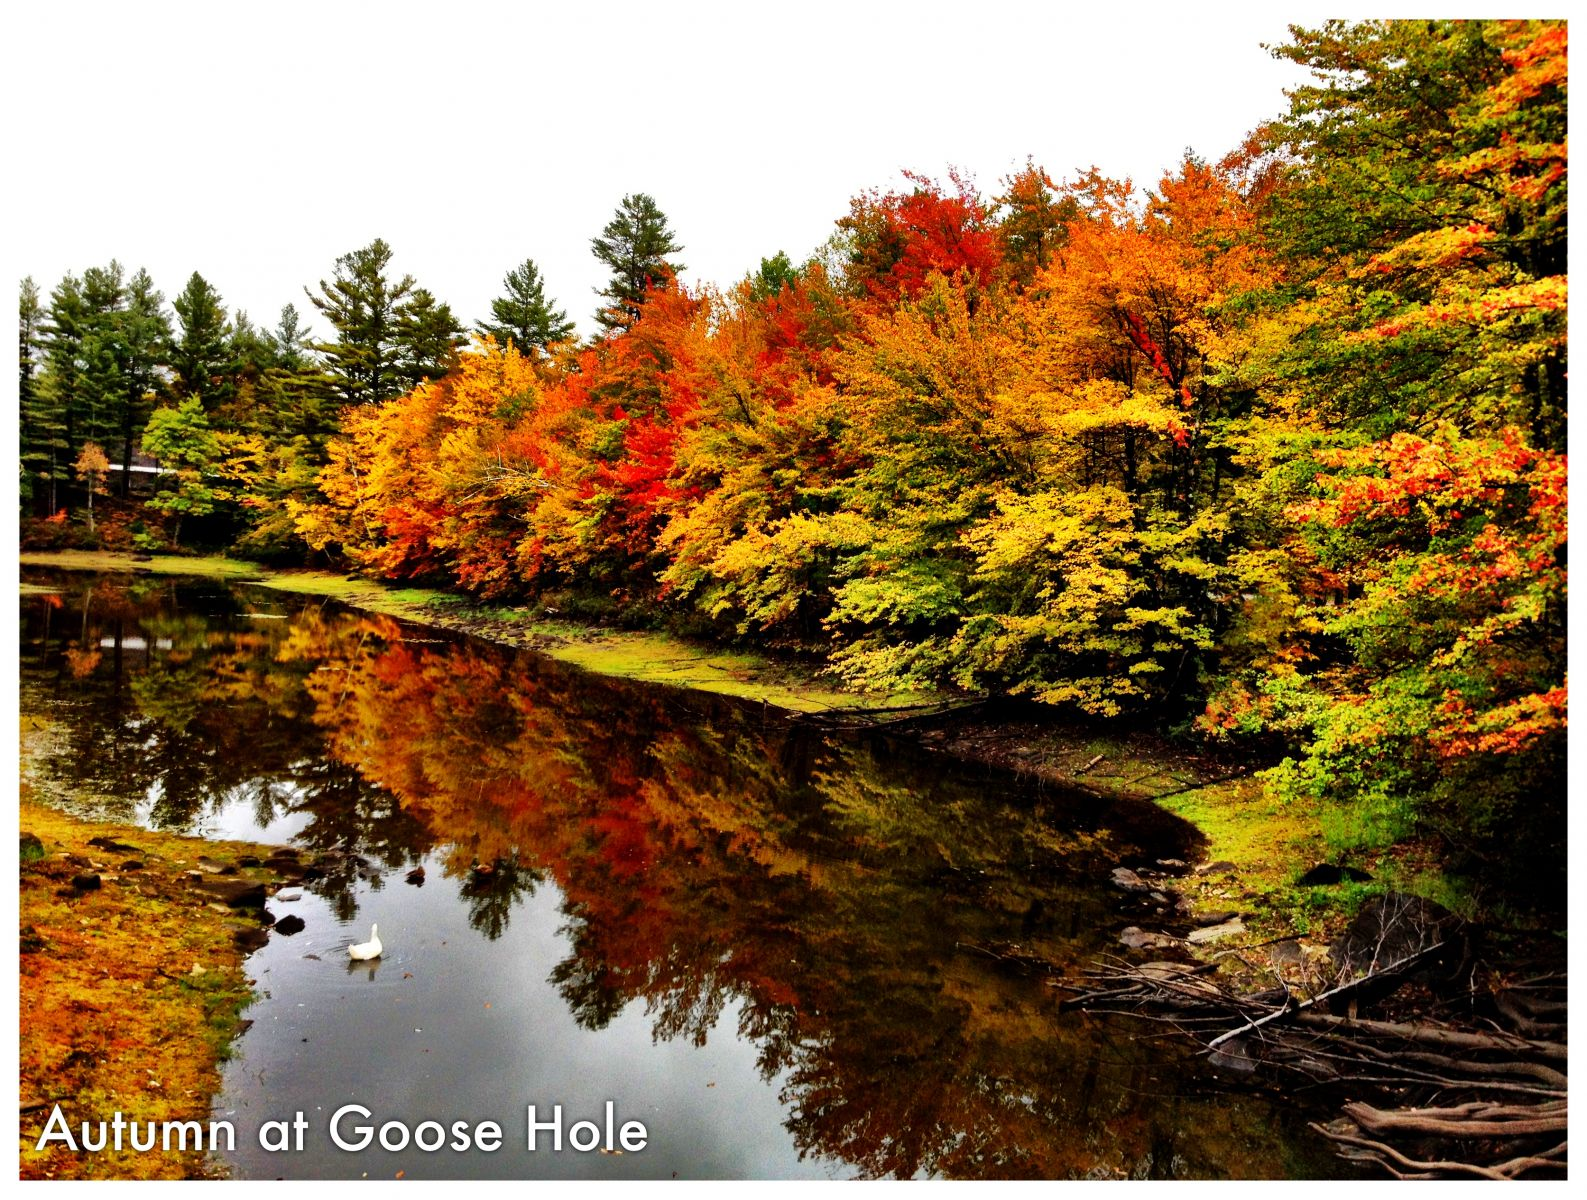 Autumn at Goose Hole